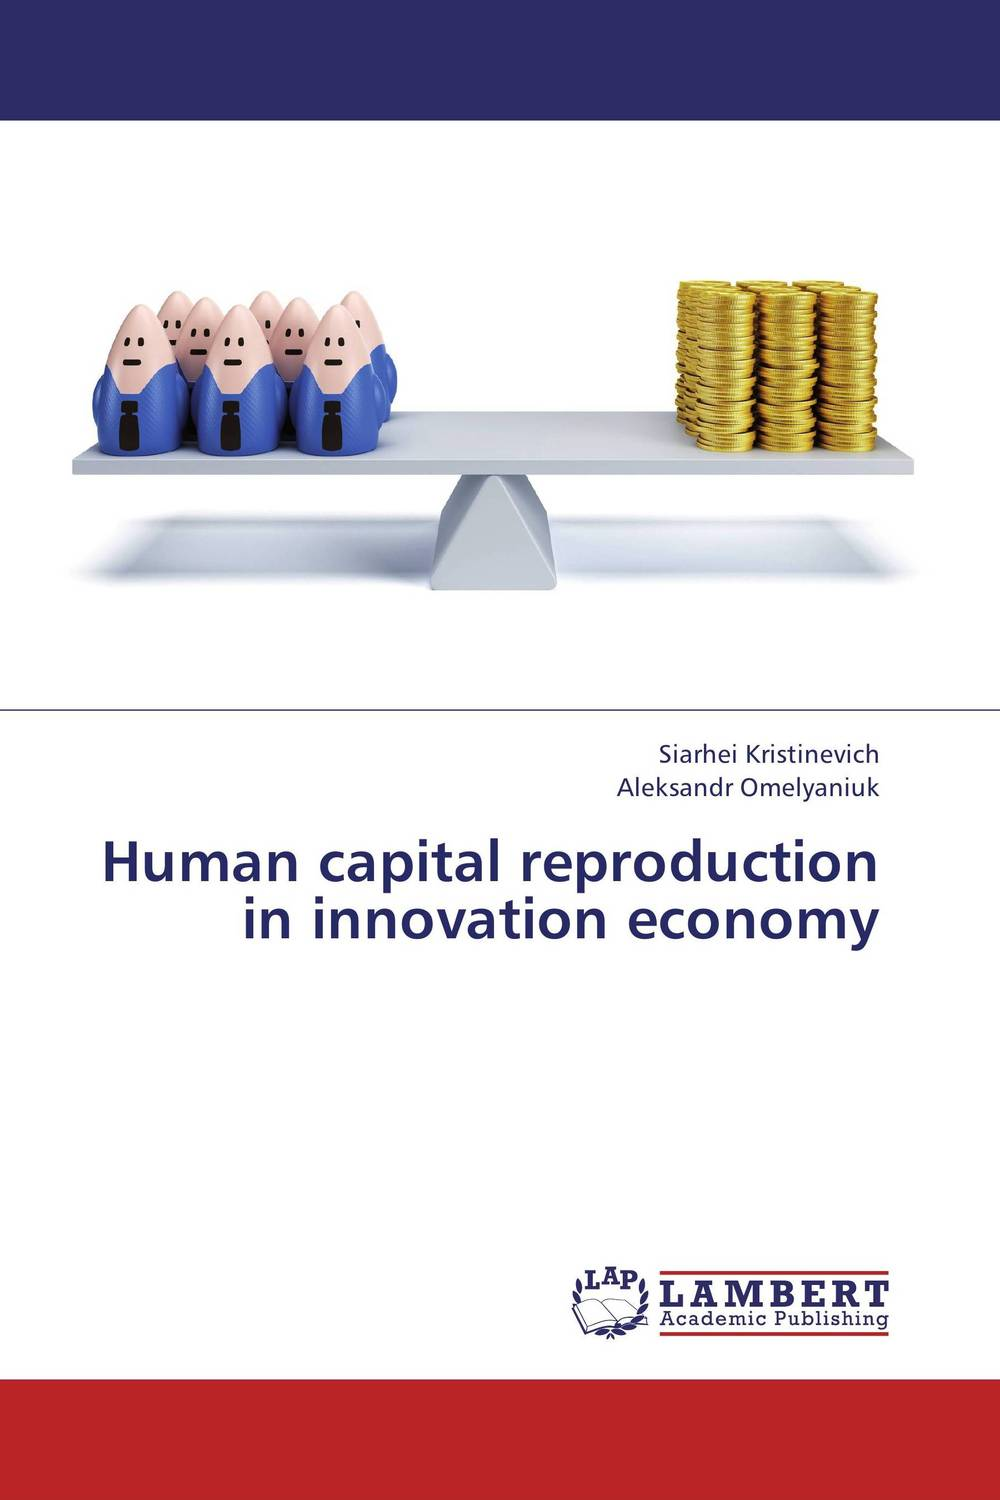 Human capital reproduction in innovation economy john mihaljevic the manual of ideas the proven framework for finding the best value investments